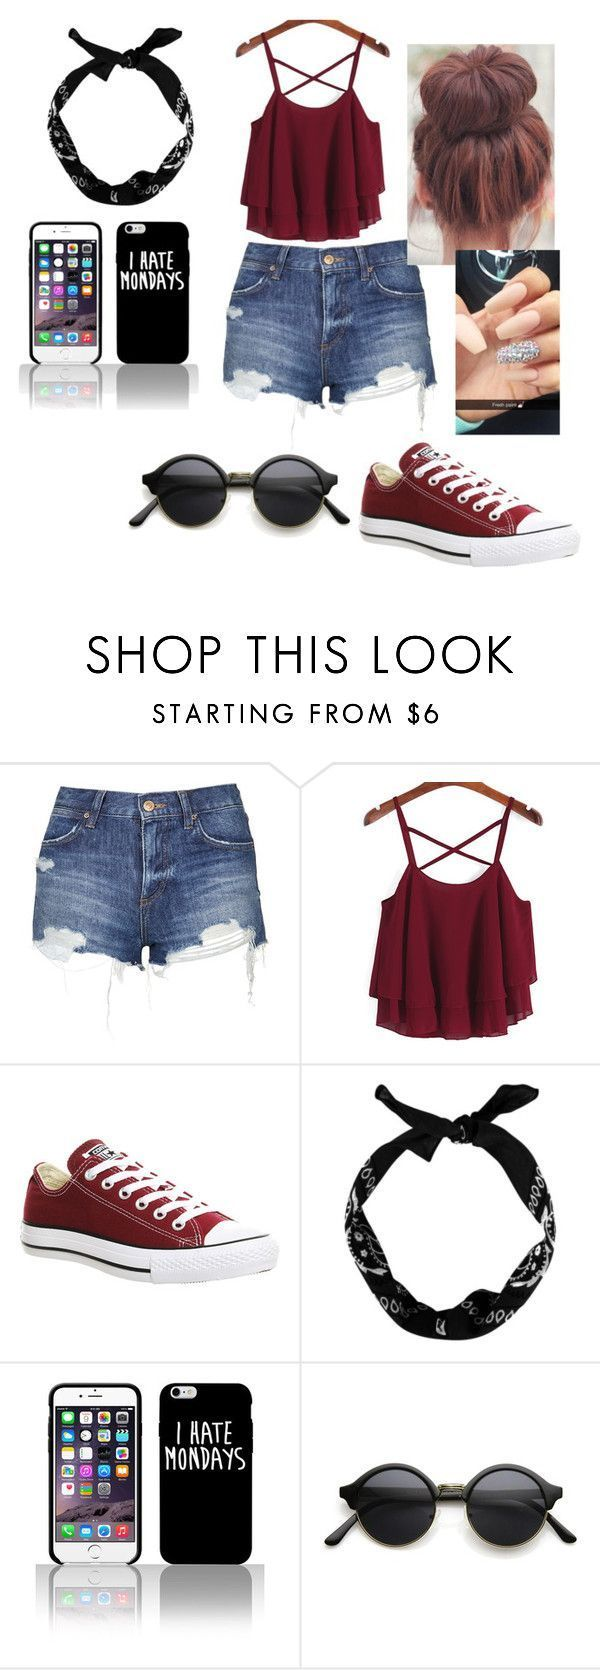 """""""the look"""" by indiasims on Polyvore featuring Topshop, Converse, women's clothing, women's fashion, women, female, woman, misses and juniors"""